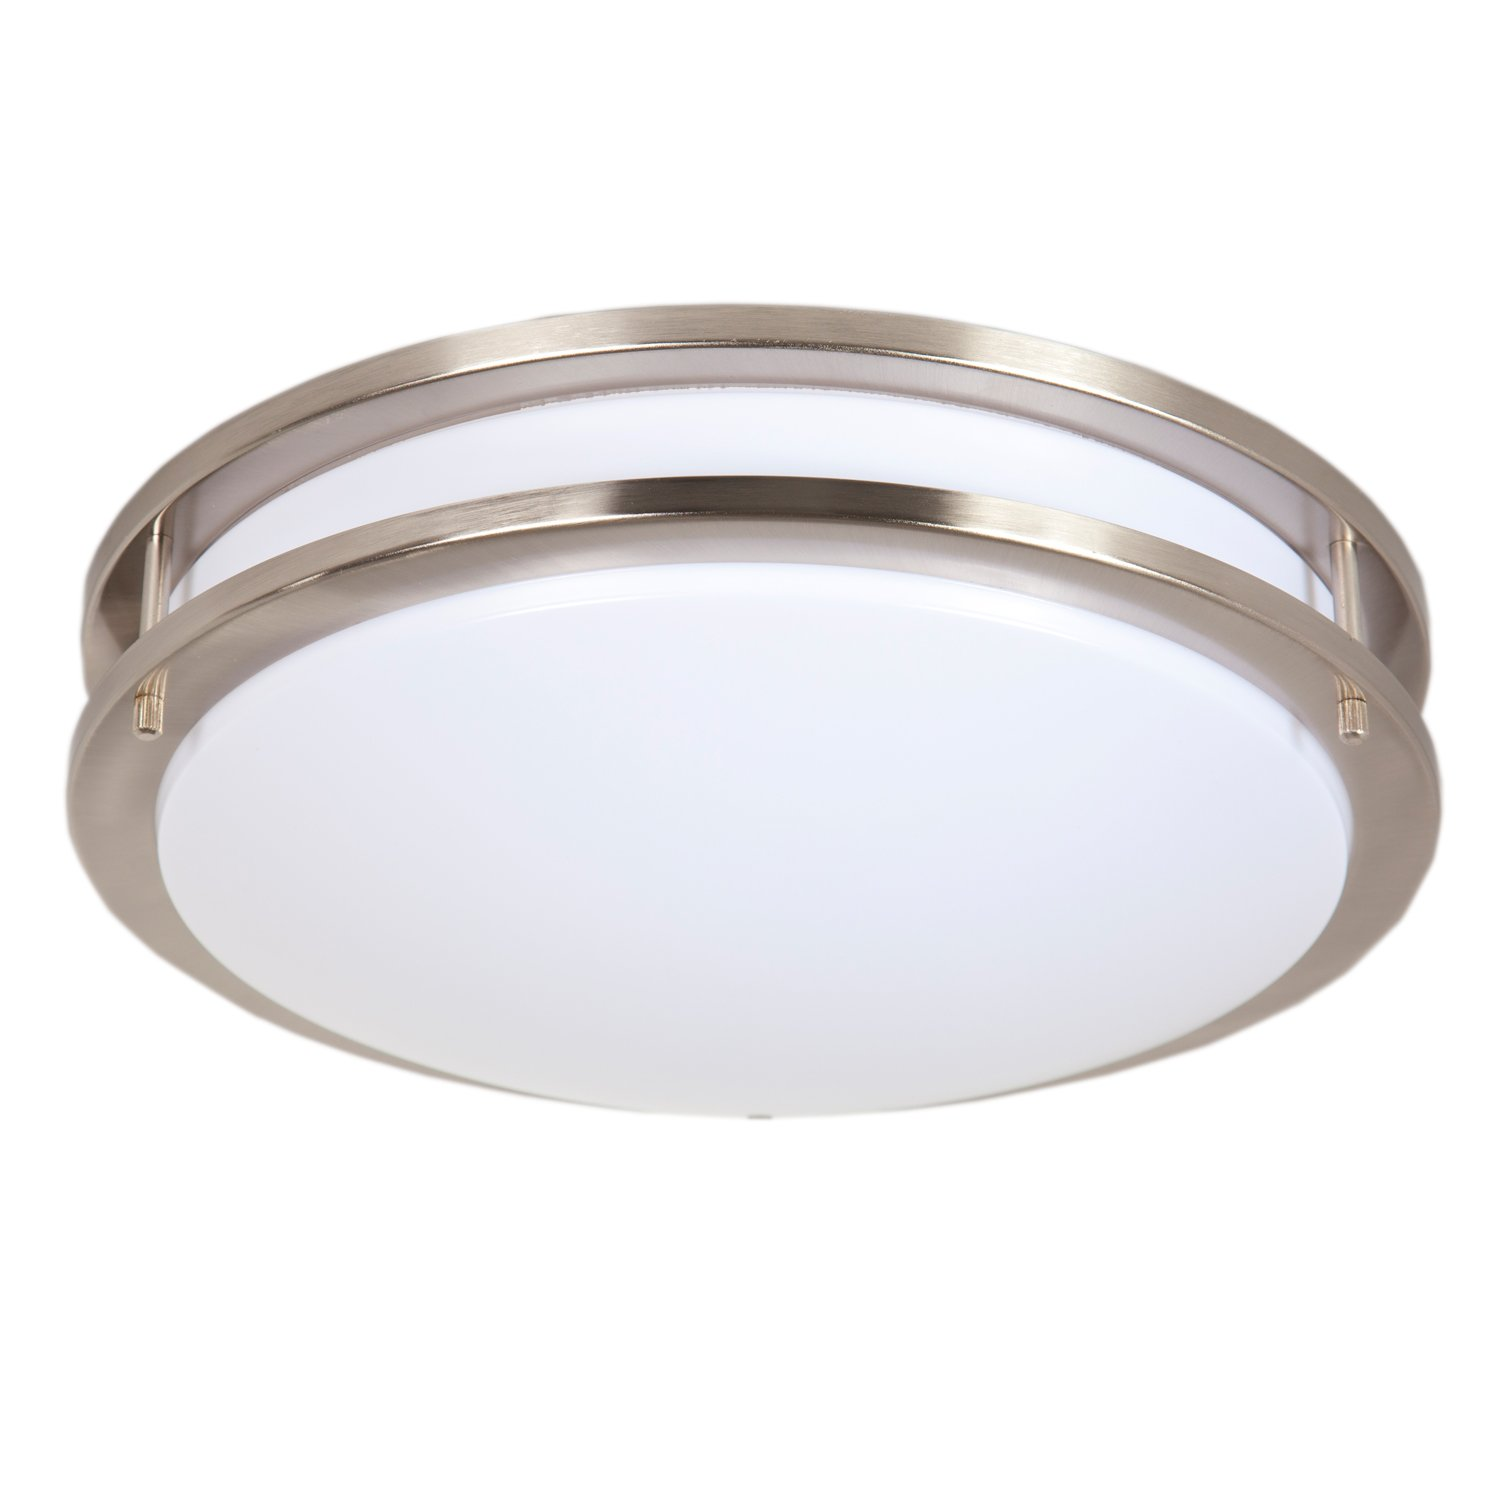 Maxxima 14'' Satin Nickel LED Ceiling Mount Light Fixture - Warm White, 1650 Lumens Dimmable, 3000K